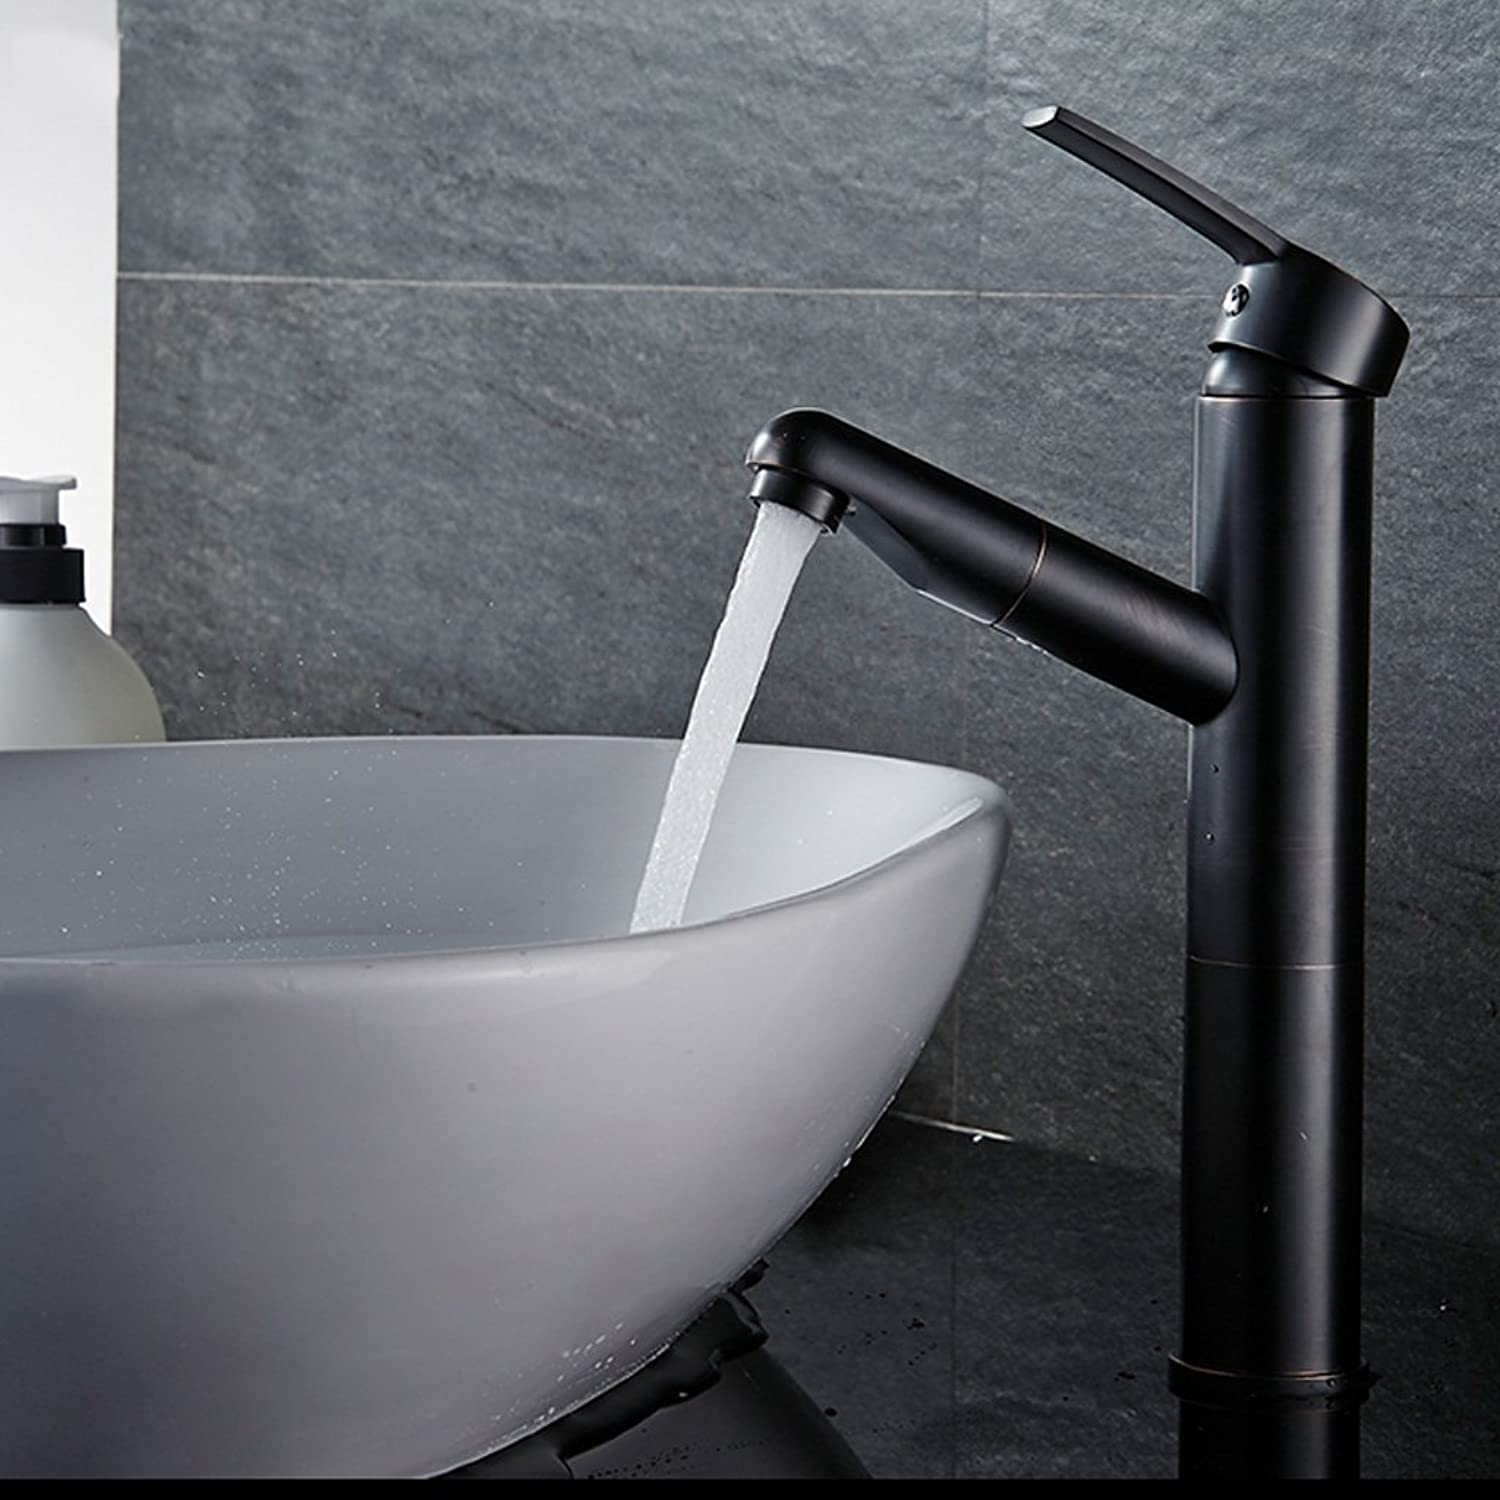 Bidet Taps Black Pull-type Faucet Copper Single Hole Hot And Cold Regulation Bathroom Basin Bathroom Wash Face Wash Head Aperture 32mm To 40mm Can Be Installed (Size   115mm275mm)